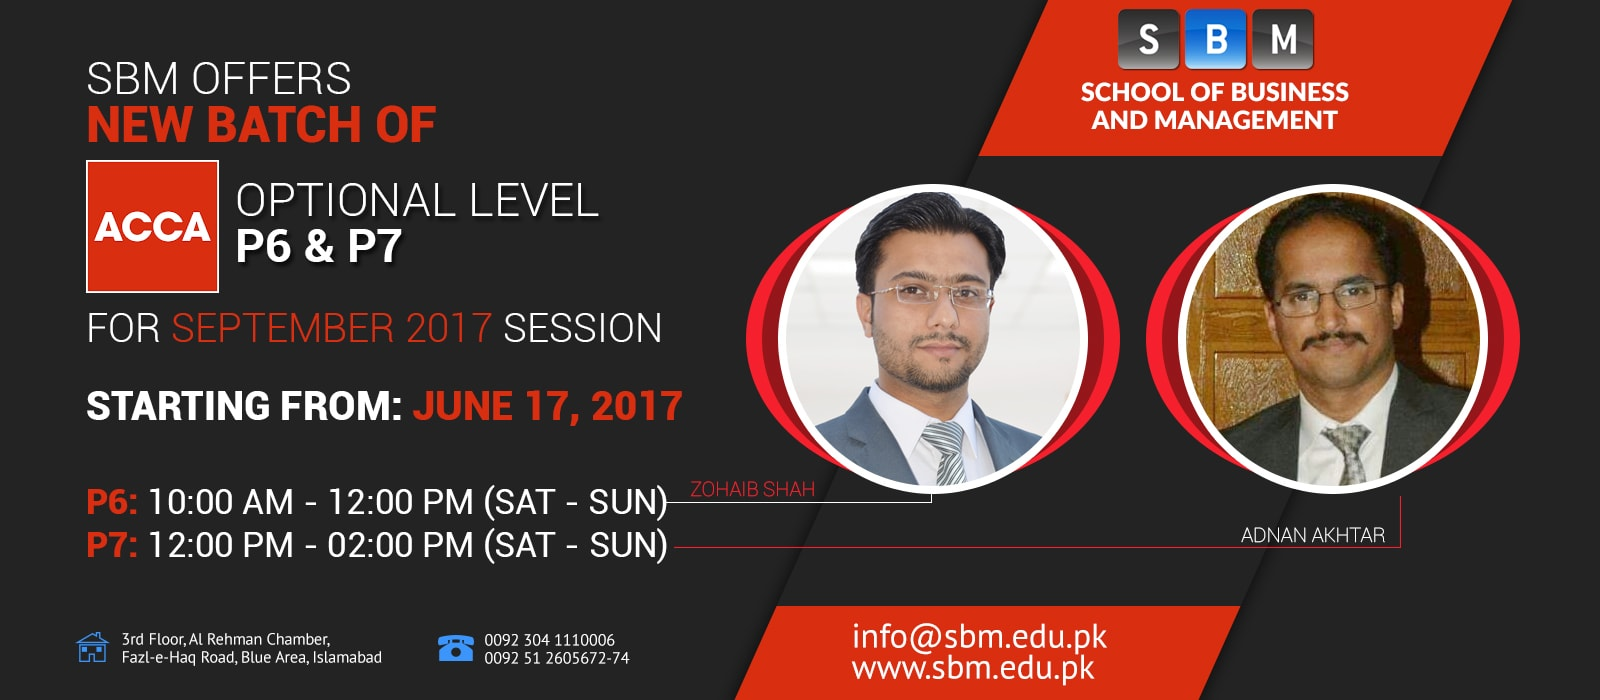 SBM commencing batches of P6 & P7